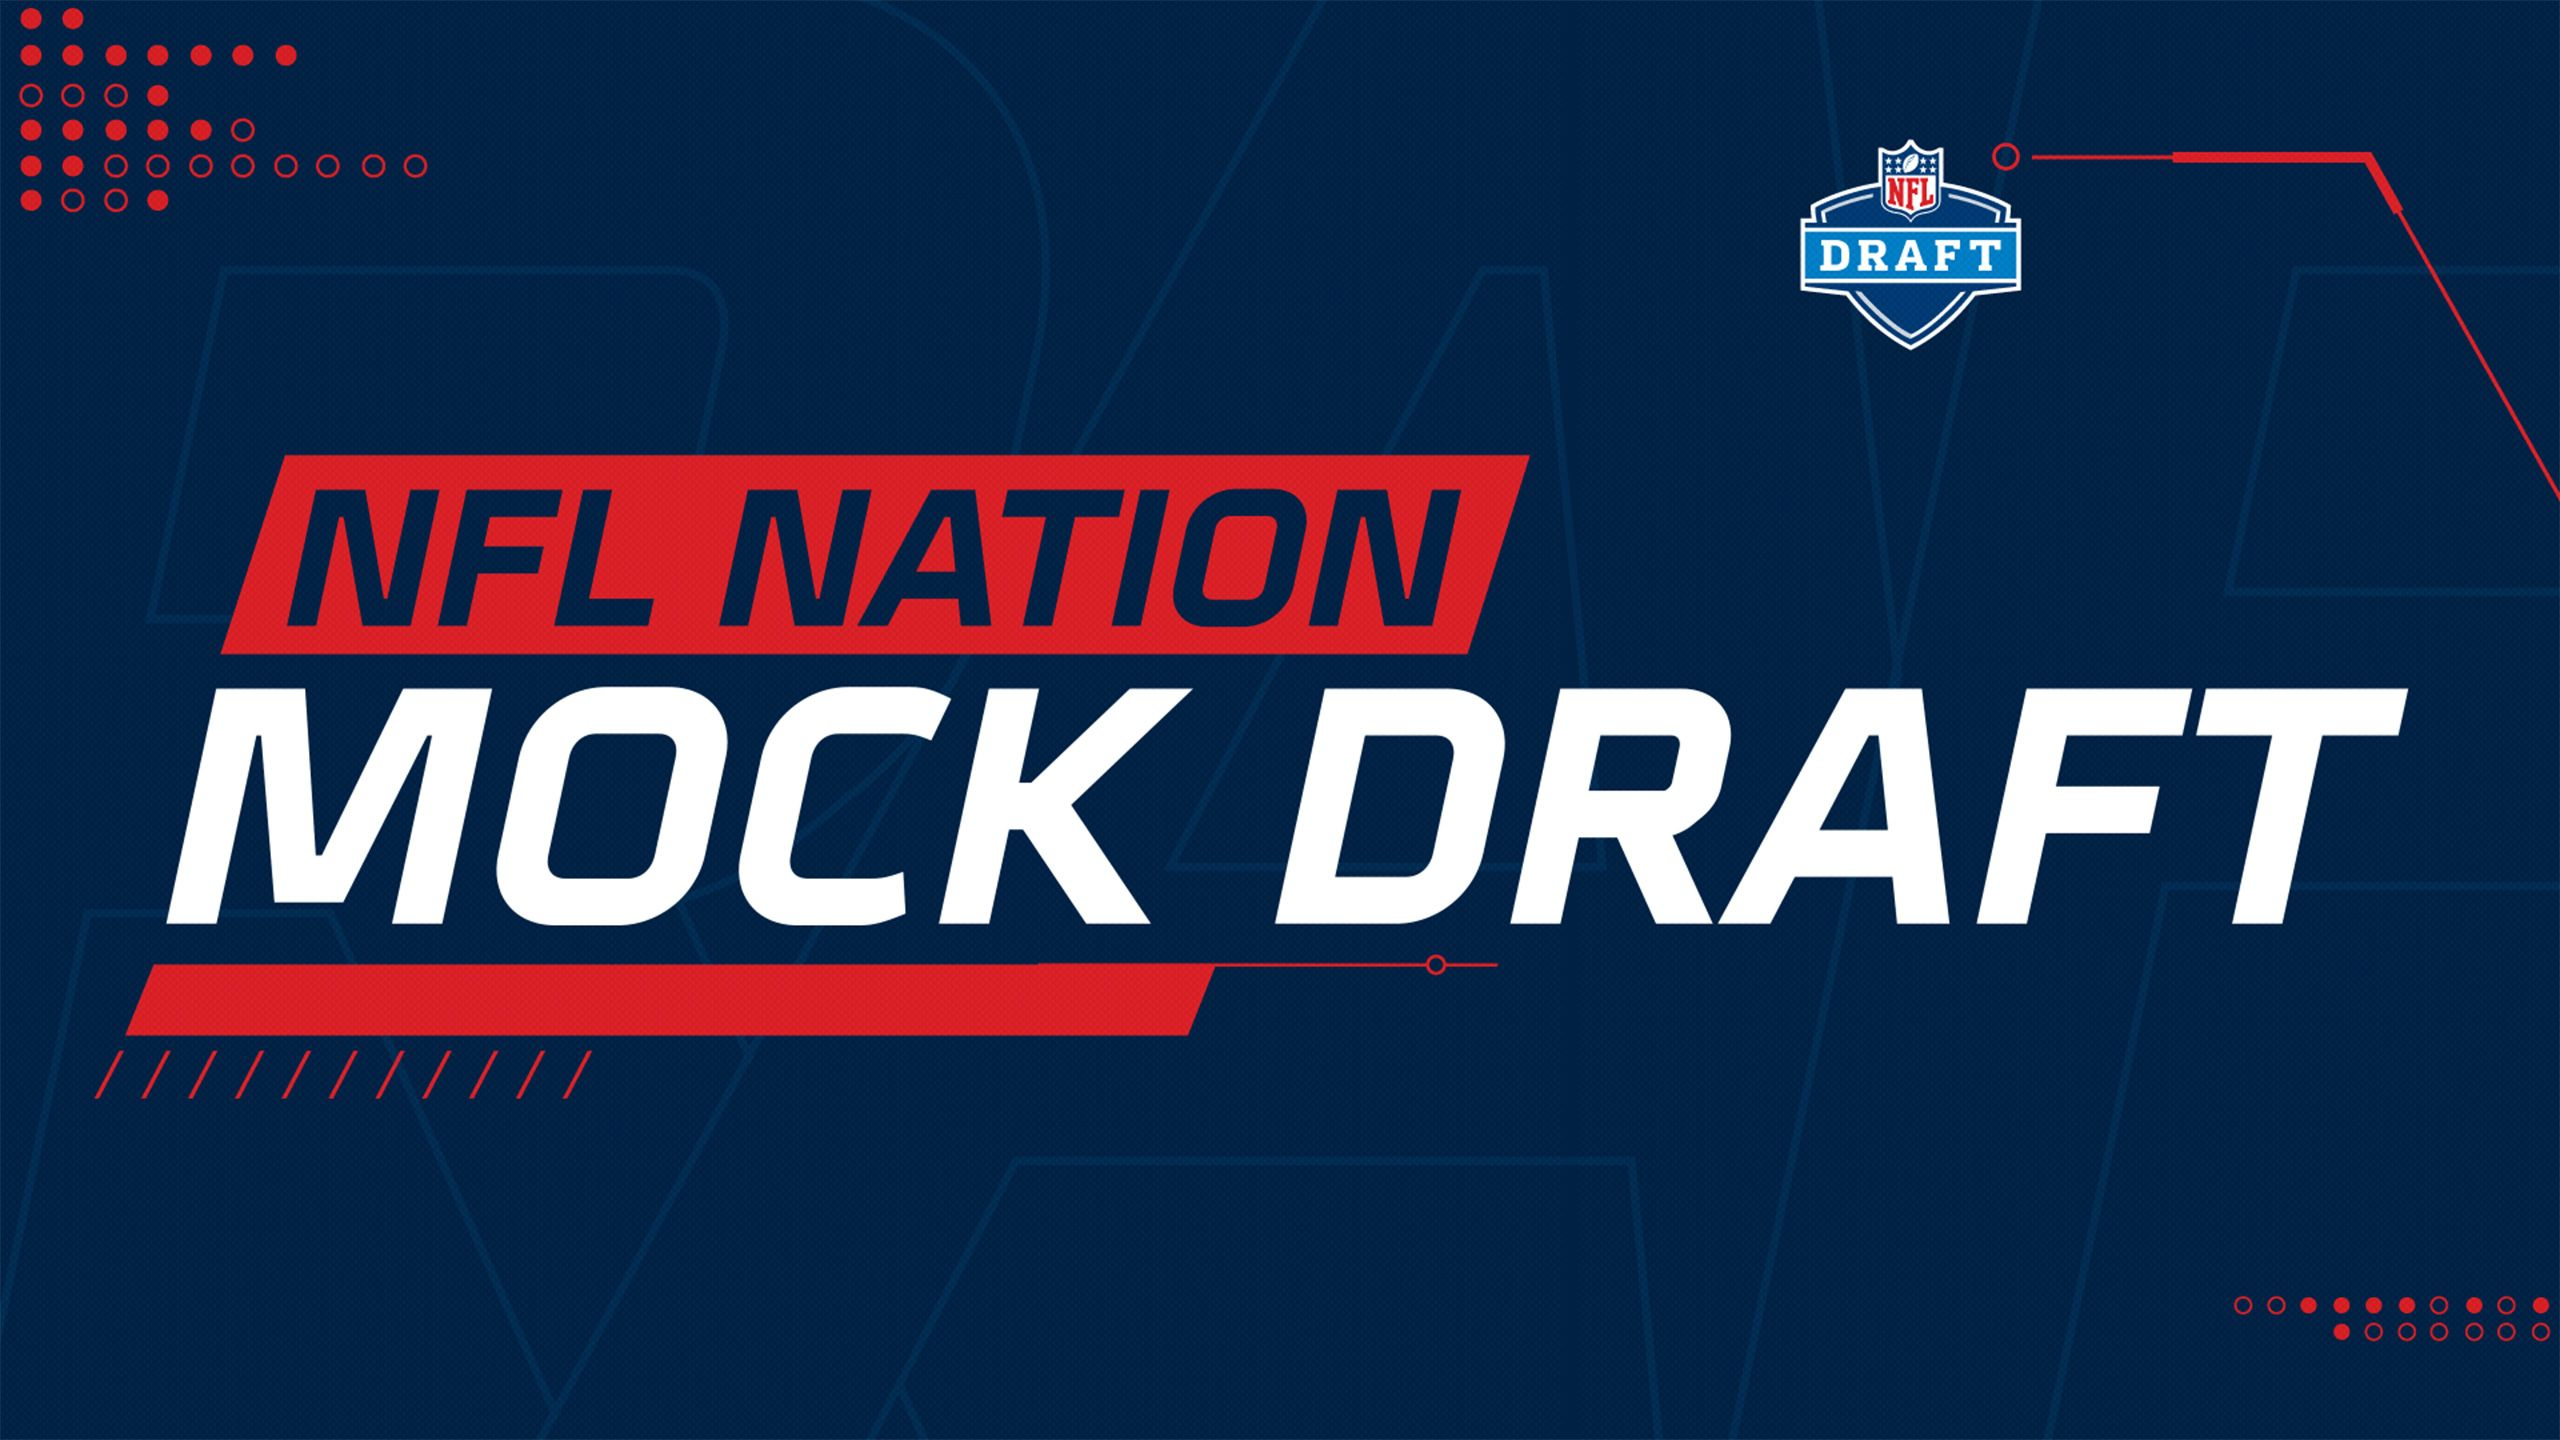 SportsCenter Special: NFL Nation Mock Draft